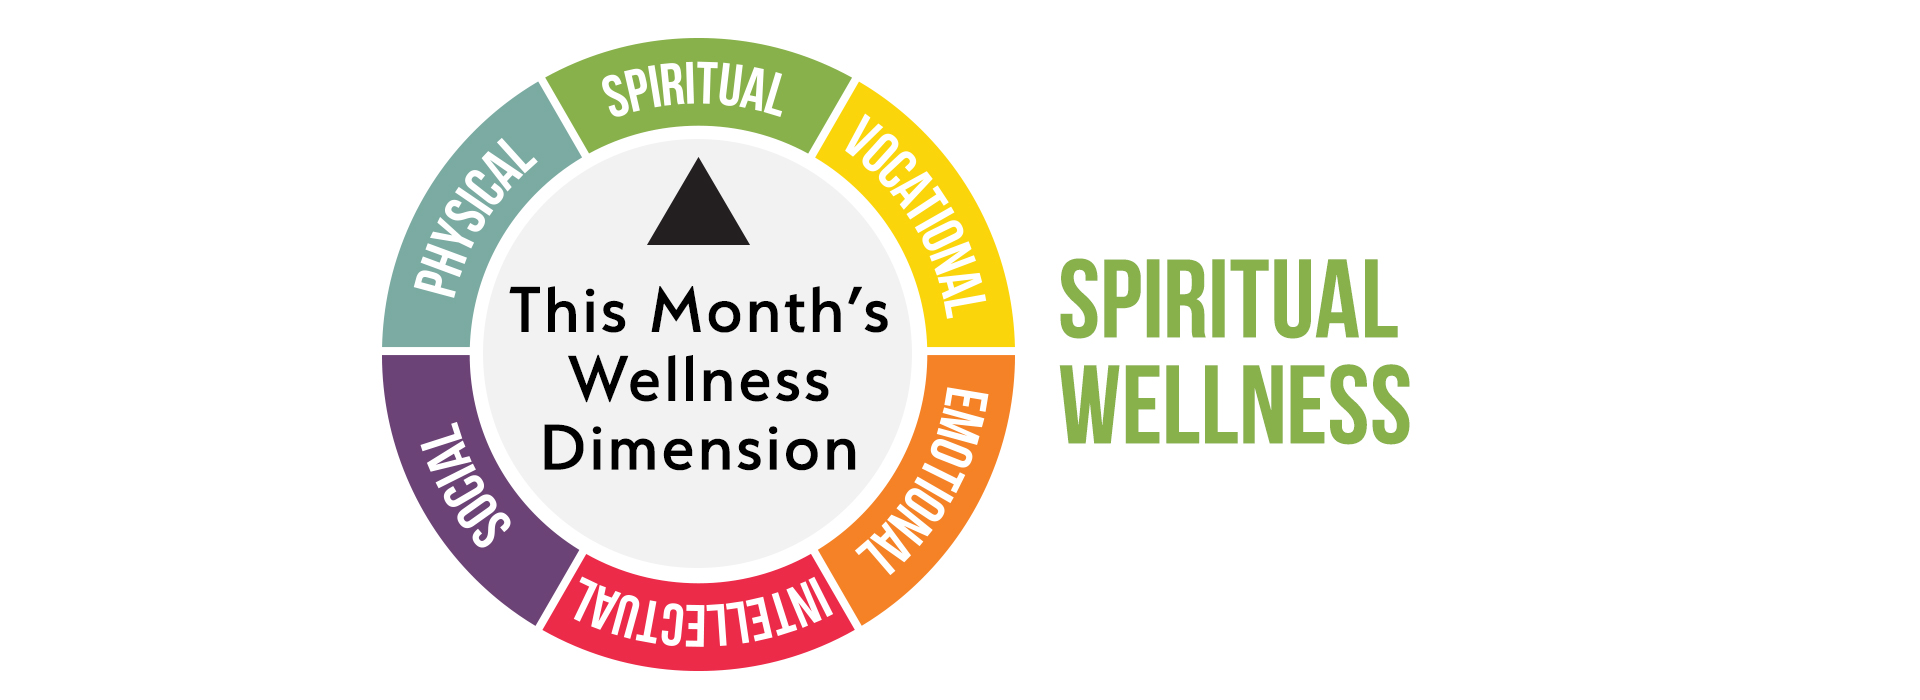 Keeping Up With The Wellness Dimensions: Spiritual Wellness